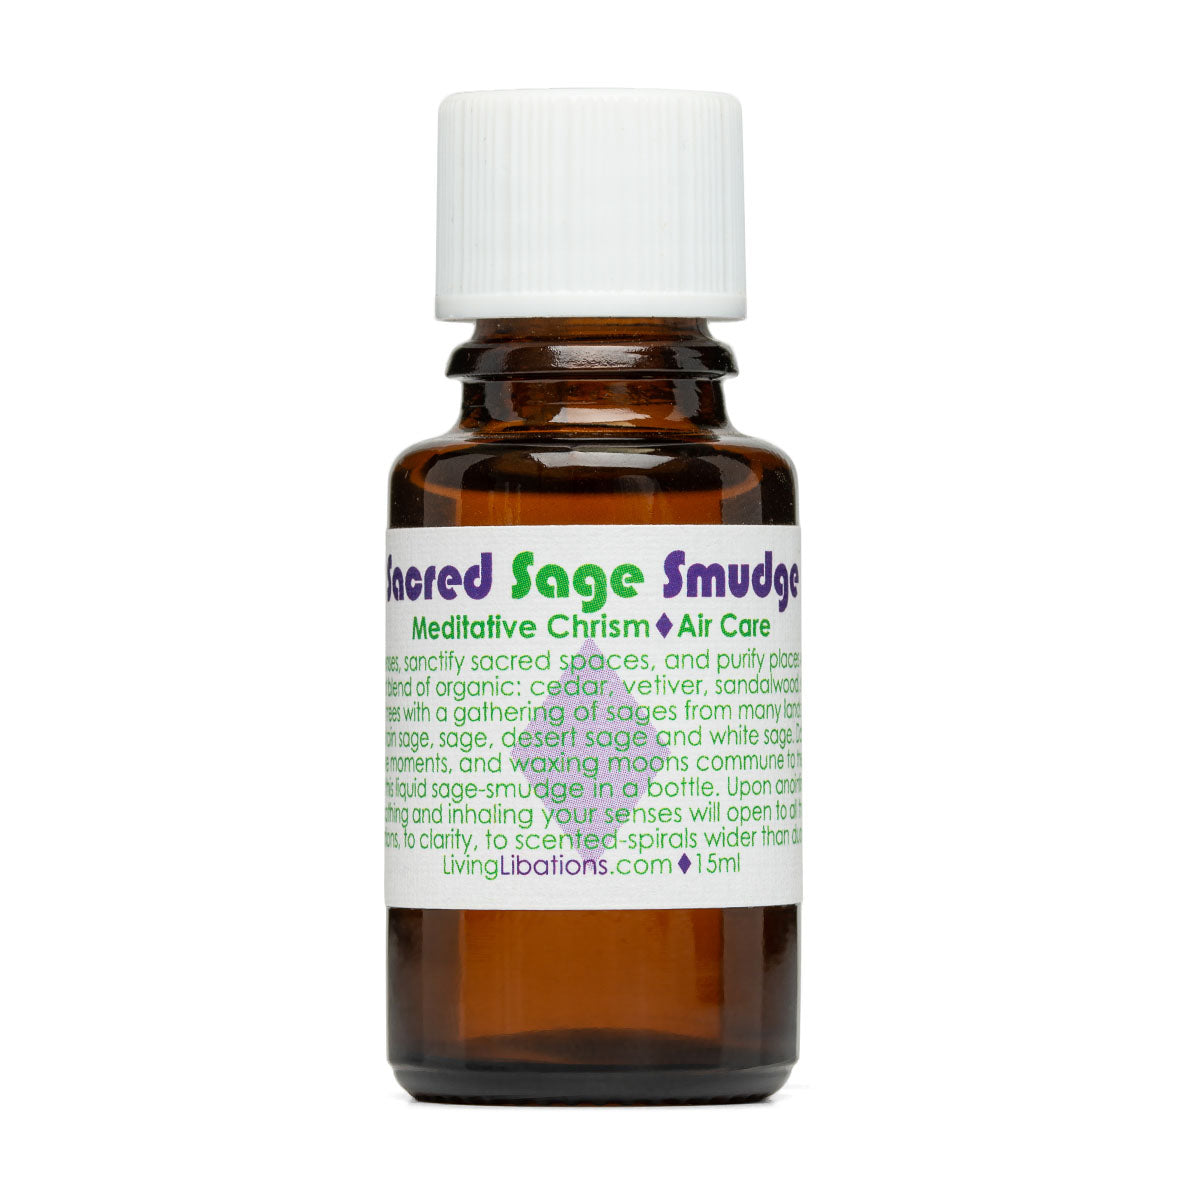 Living Libations - Sacred Sage Smudge Chrism (5ml / 15ml)